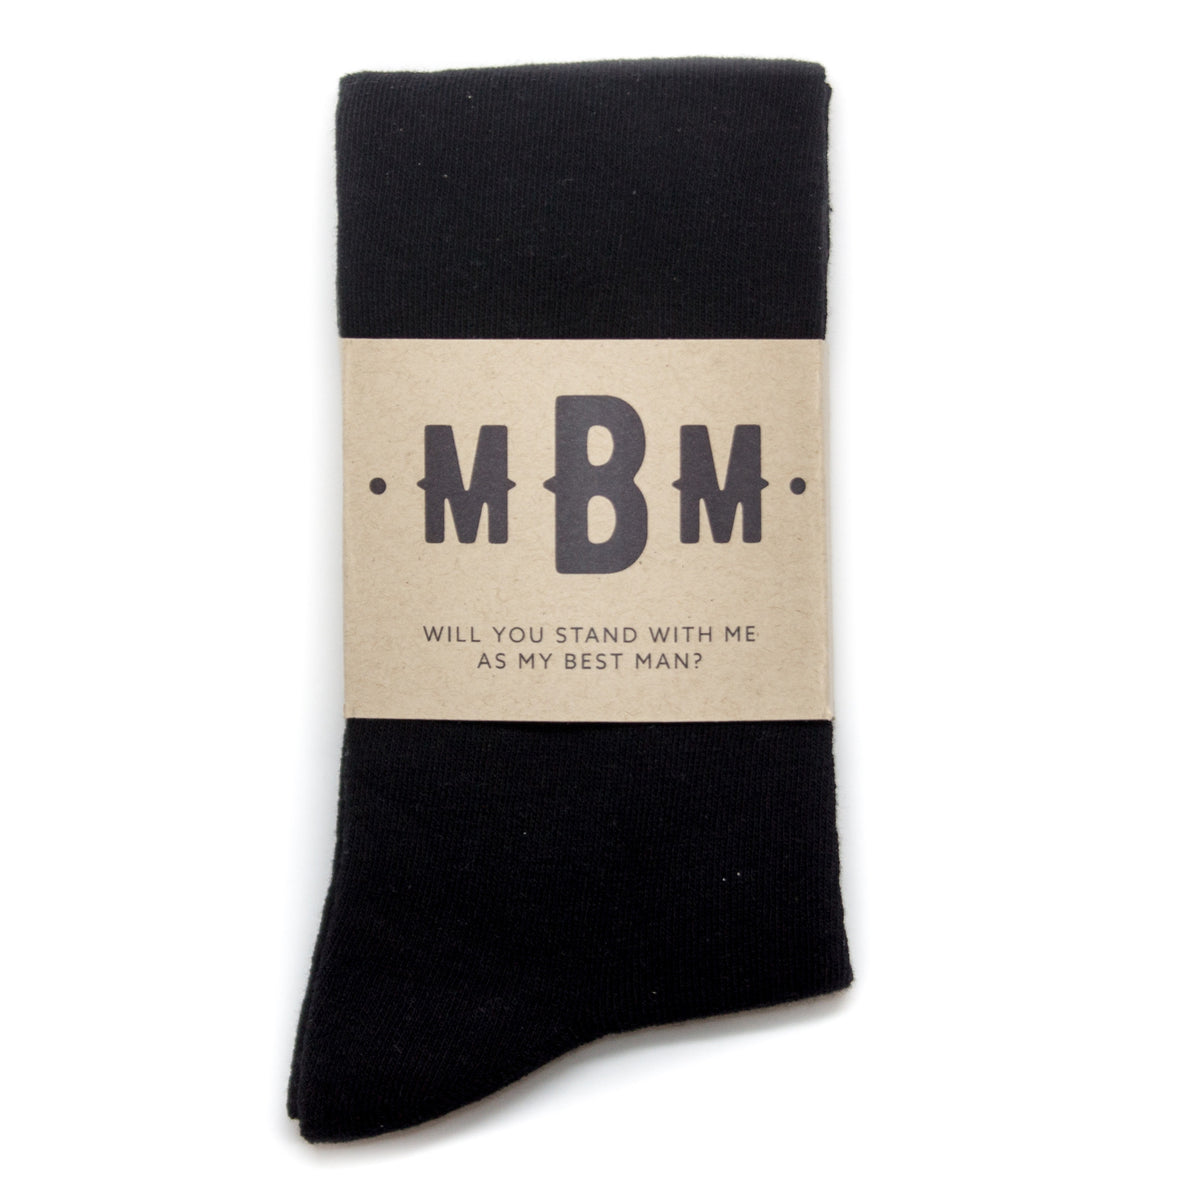 Custom Sock Label for Groomsmen | No Cold Feet Co.